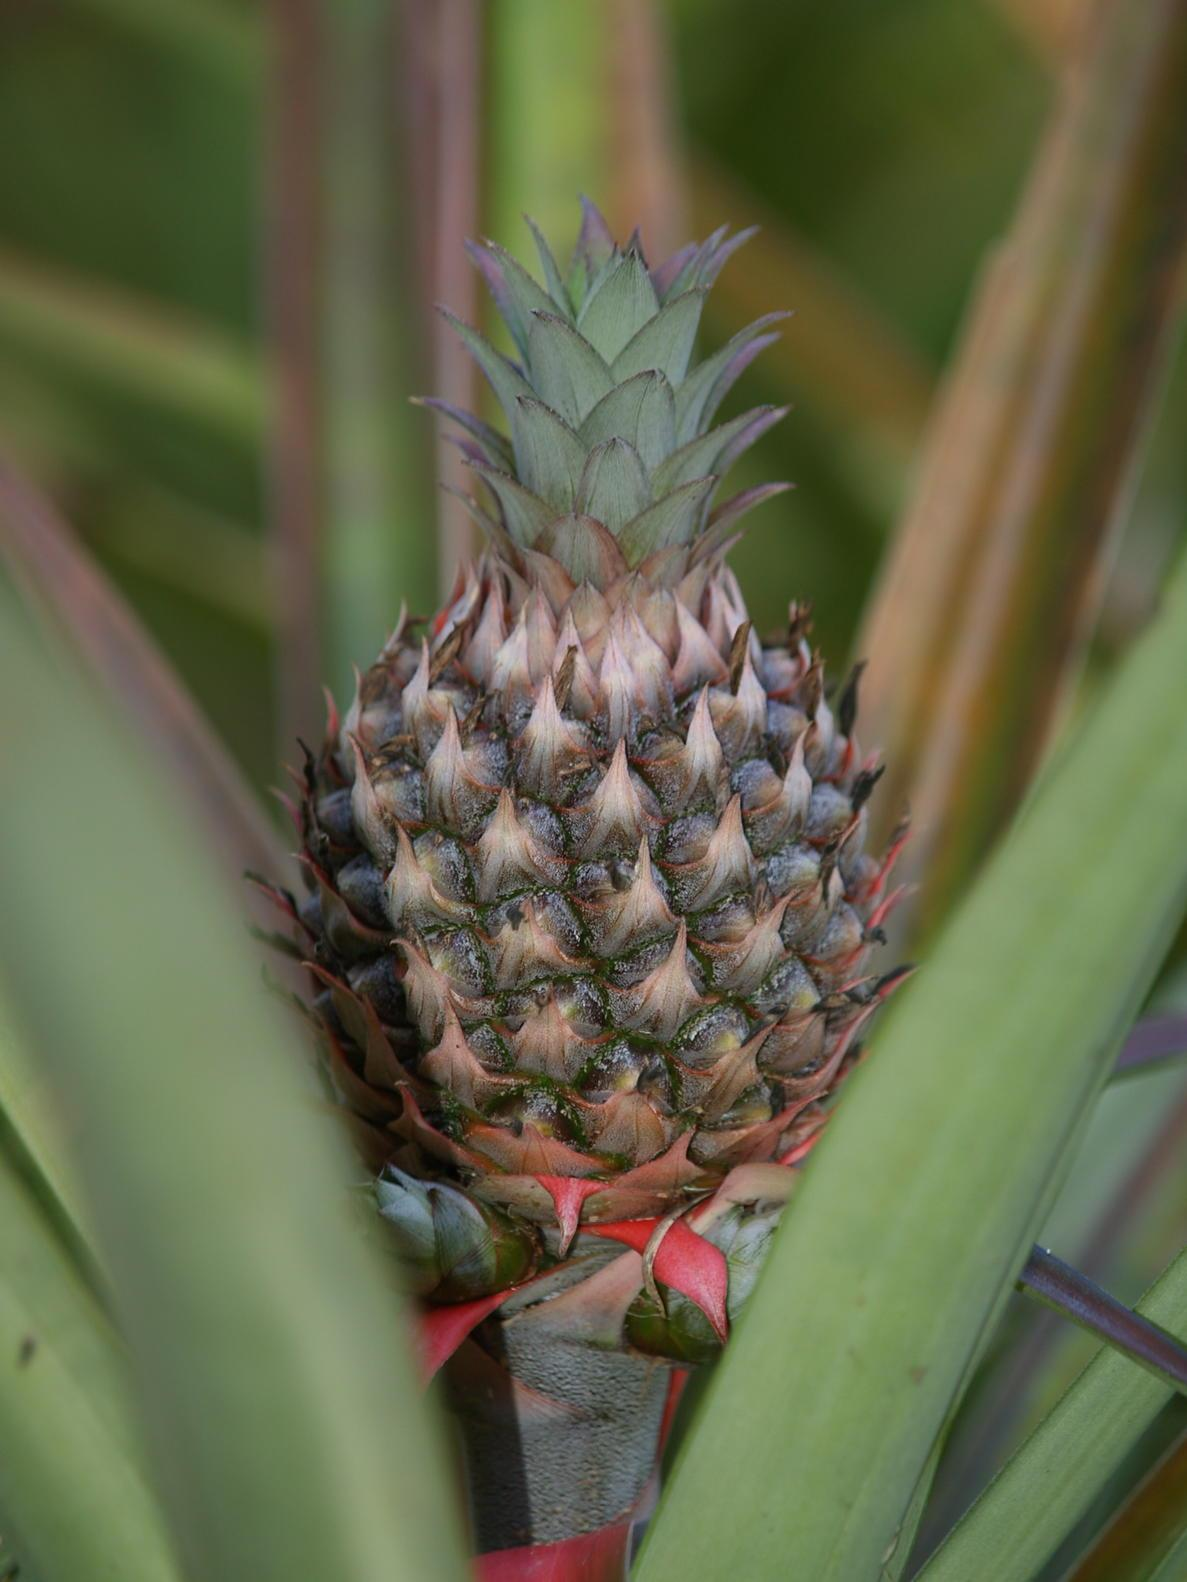 the pineapple which is not related to pines nor apples